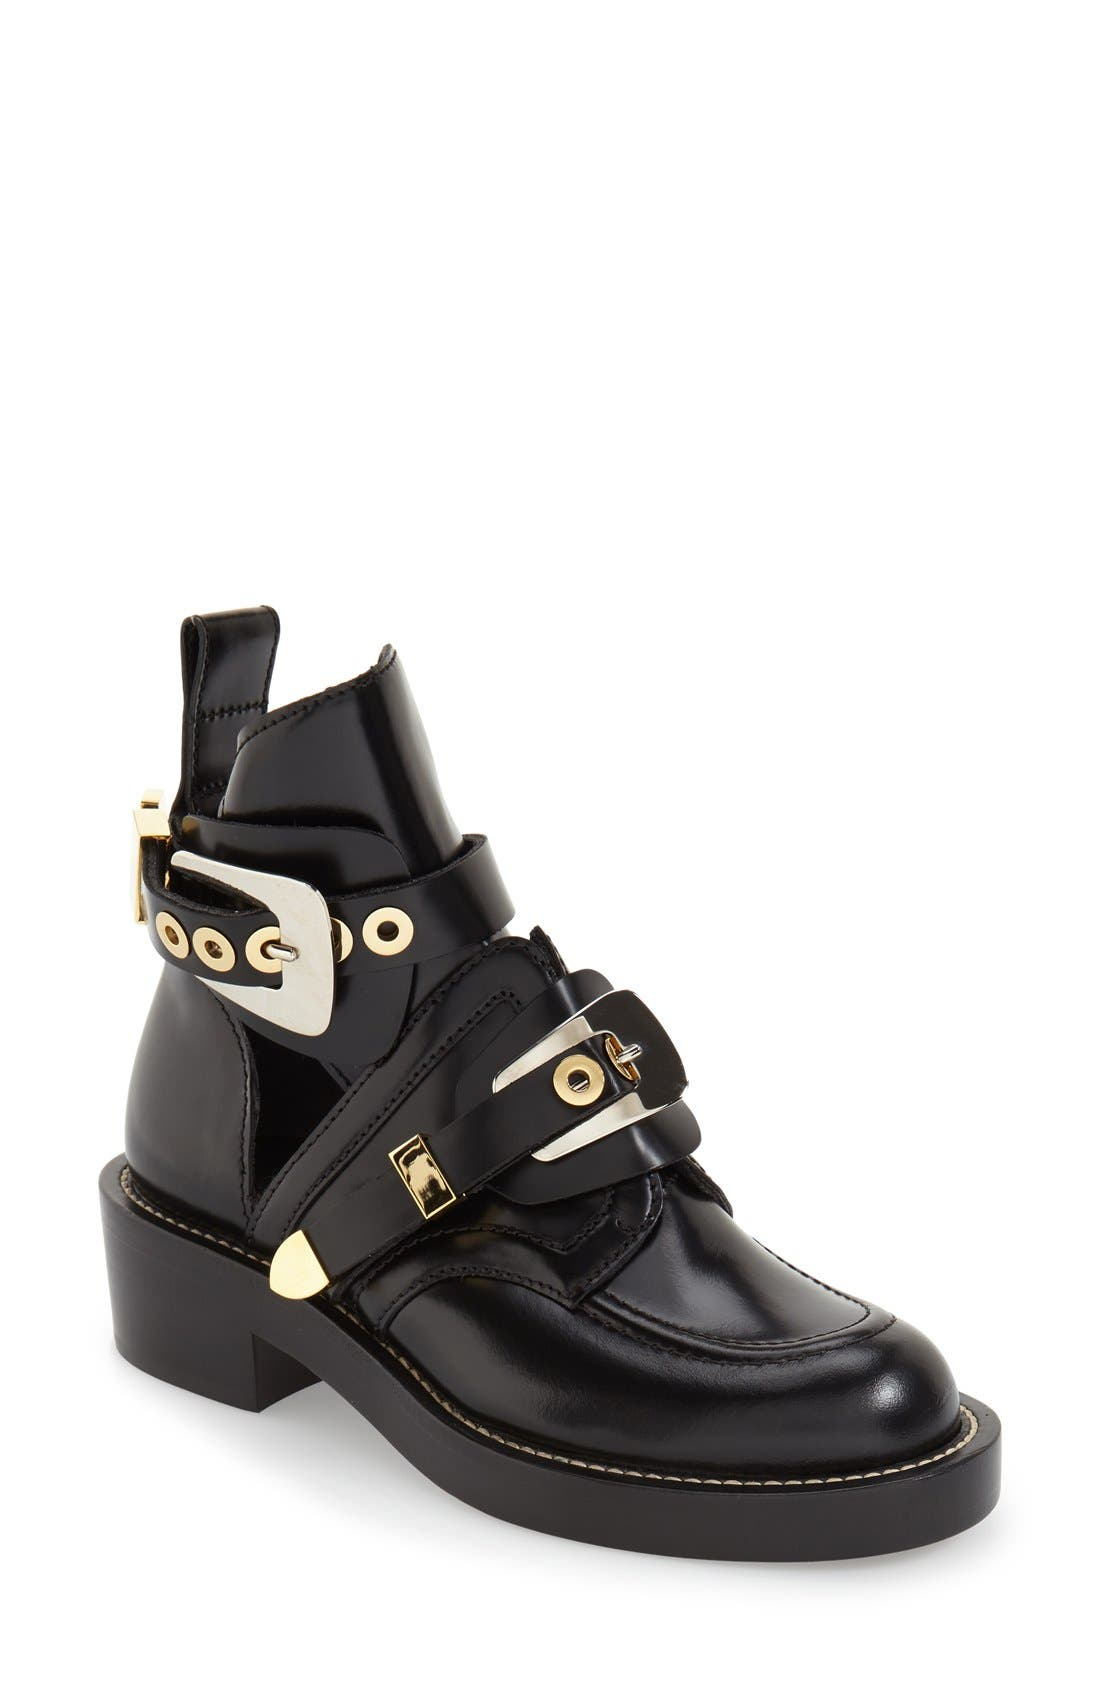 Alternate Image 1 Selected - Balenciaga Cutout Buckle Boot (Women)